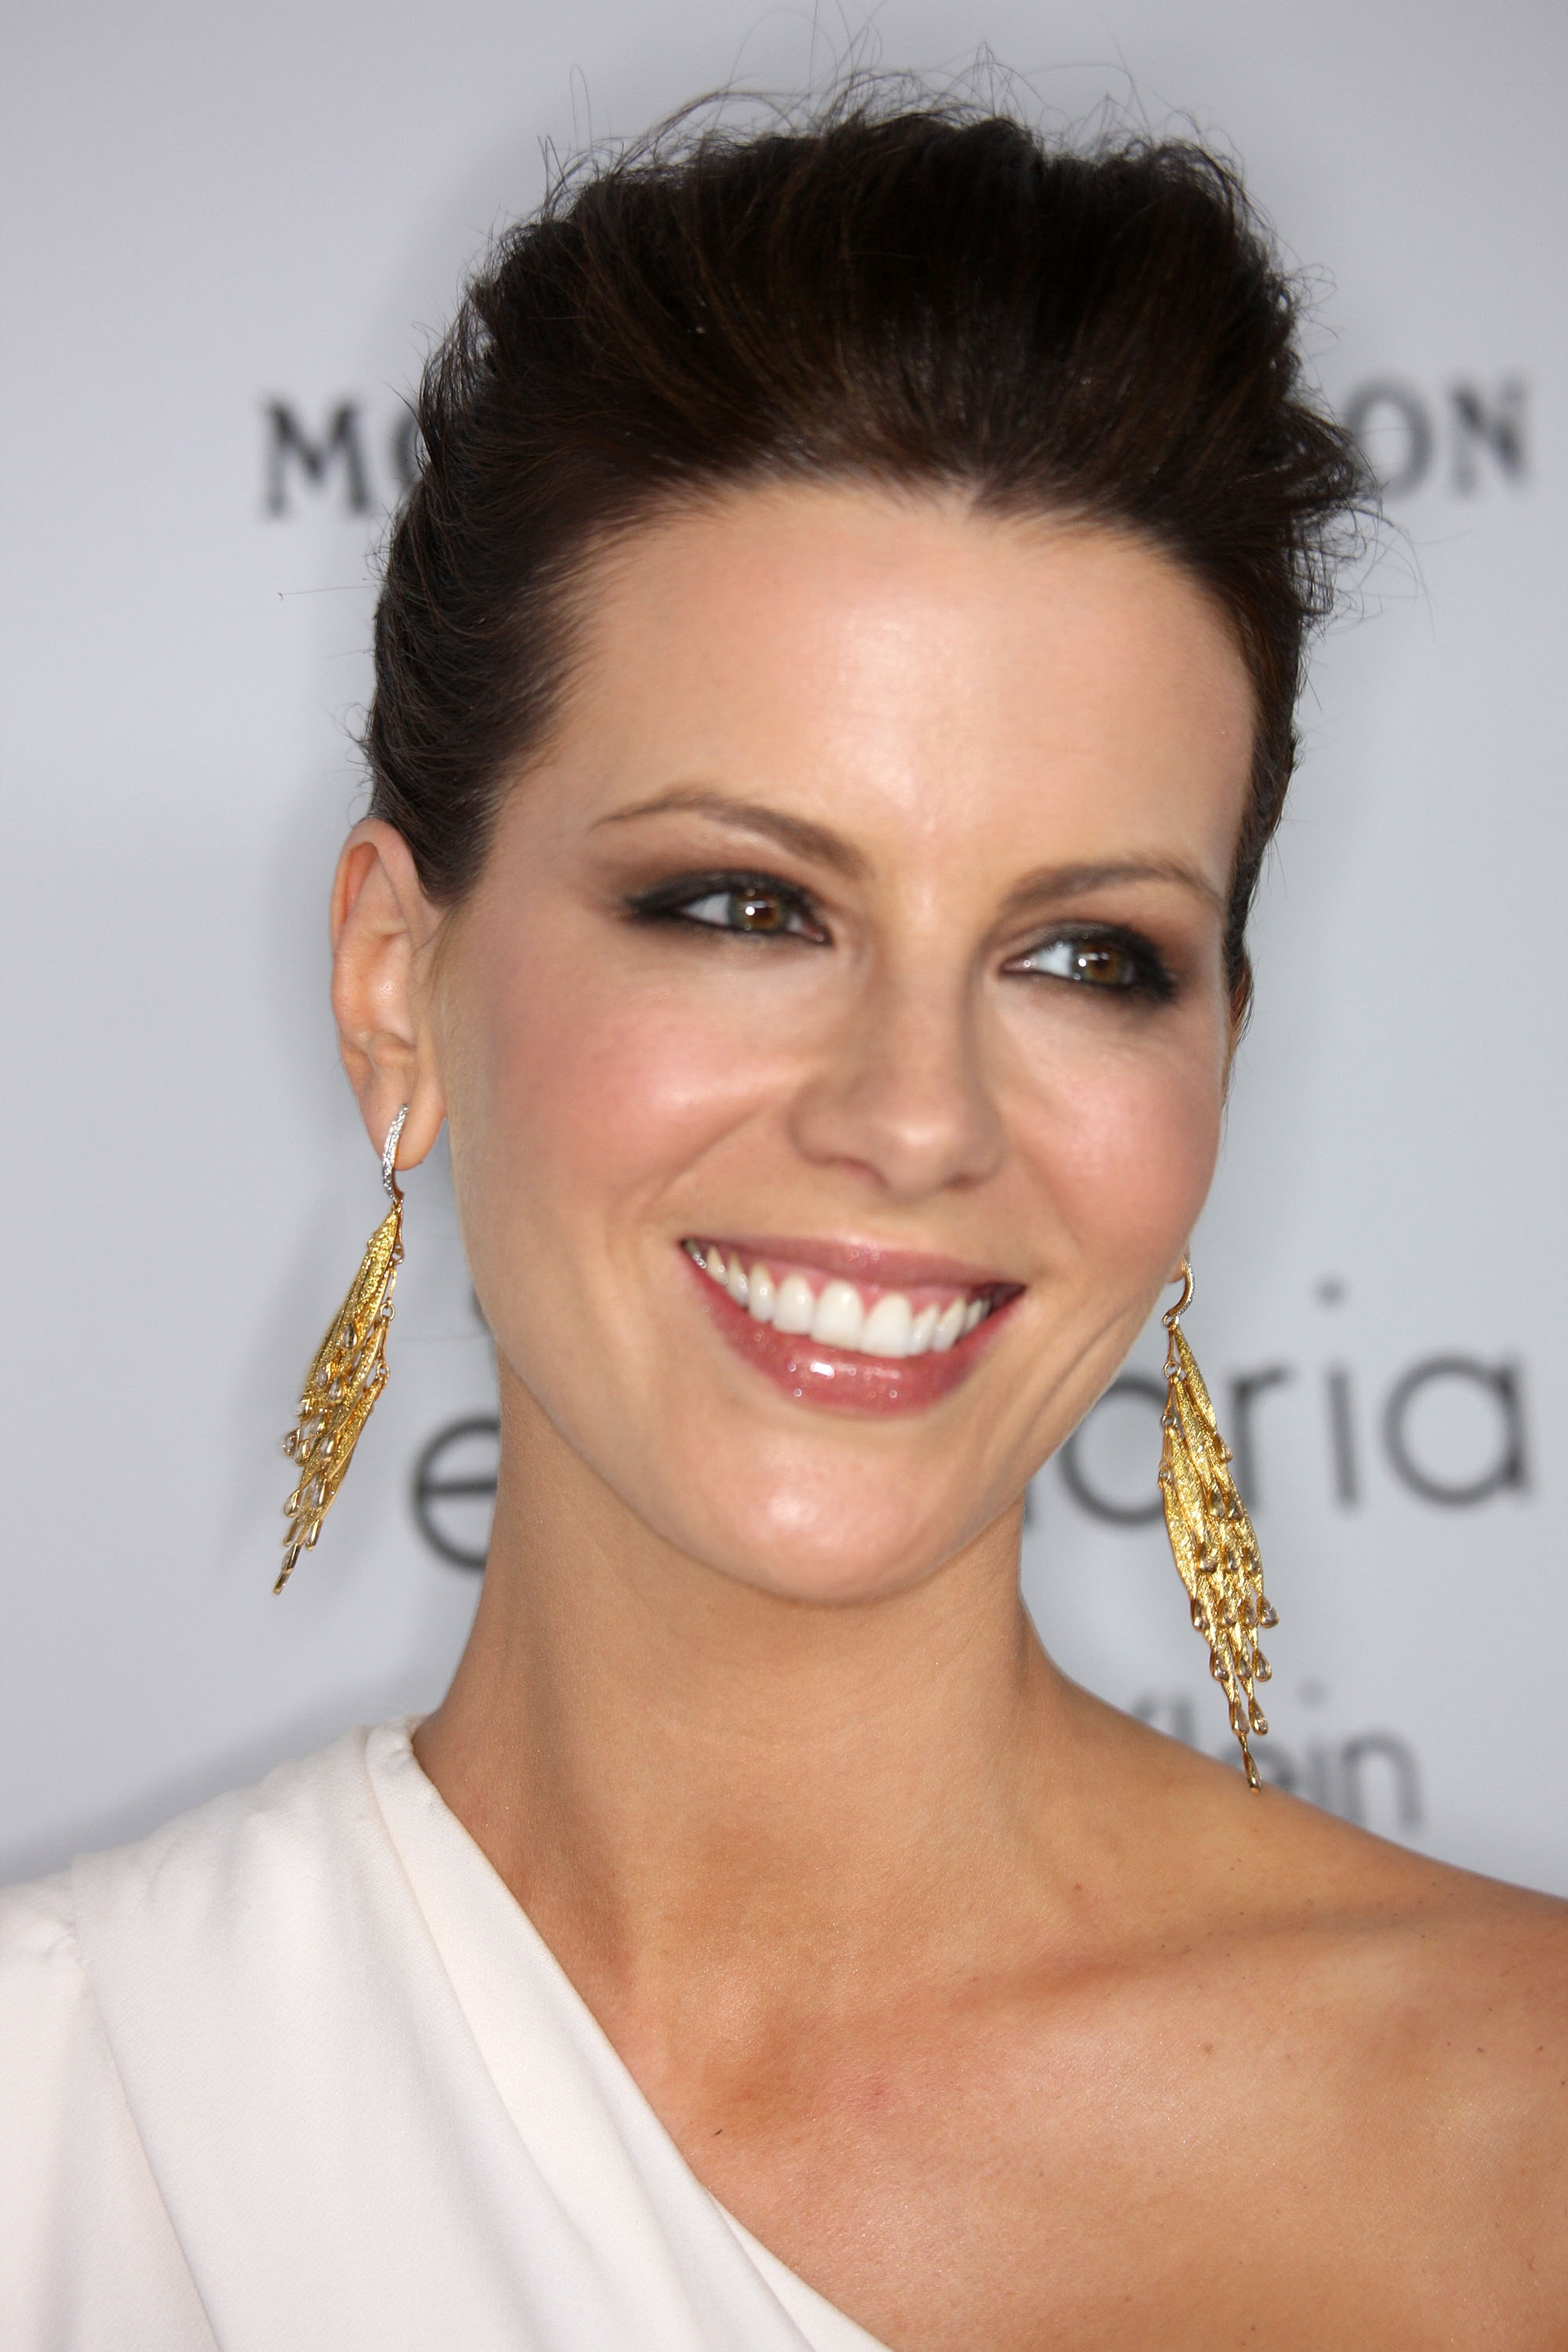 58999_Celebutopia-Kate_Beckinsale-15th_annual_Women_In_Hollywood_Tribute_-03_122_1171lo.jpg